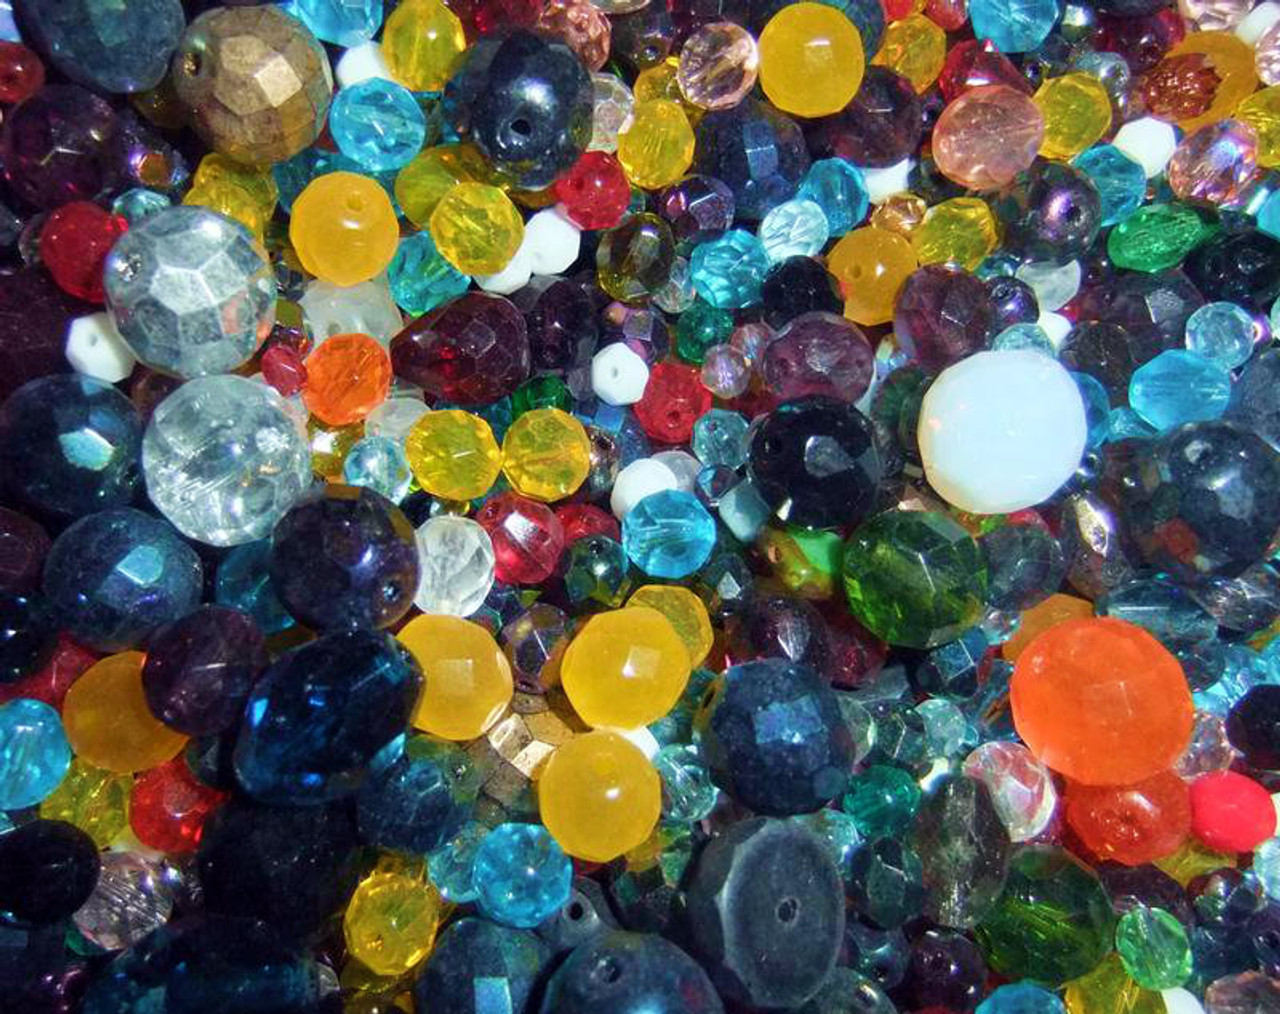 BEAD MIX - 6 oz (Approx 175-225 beads)